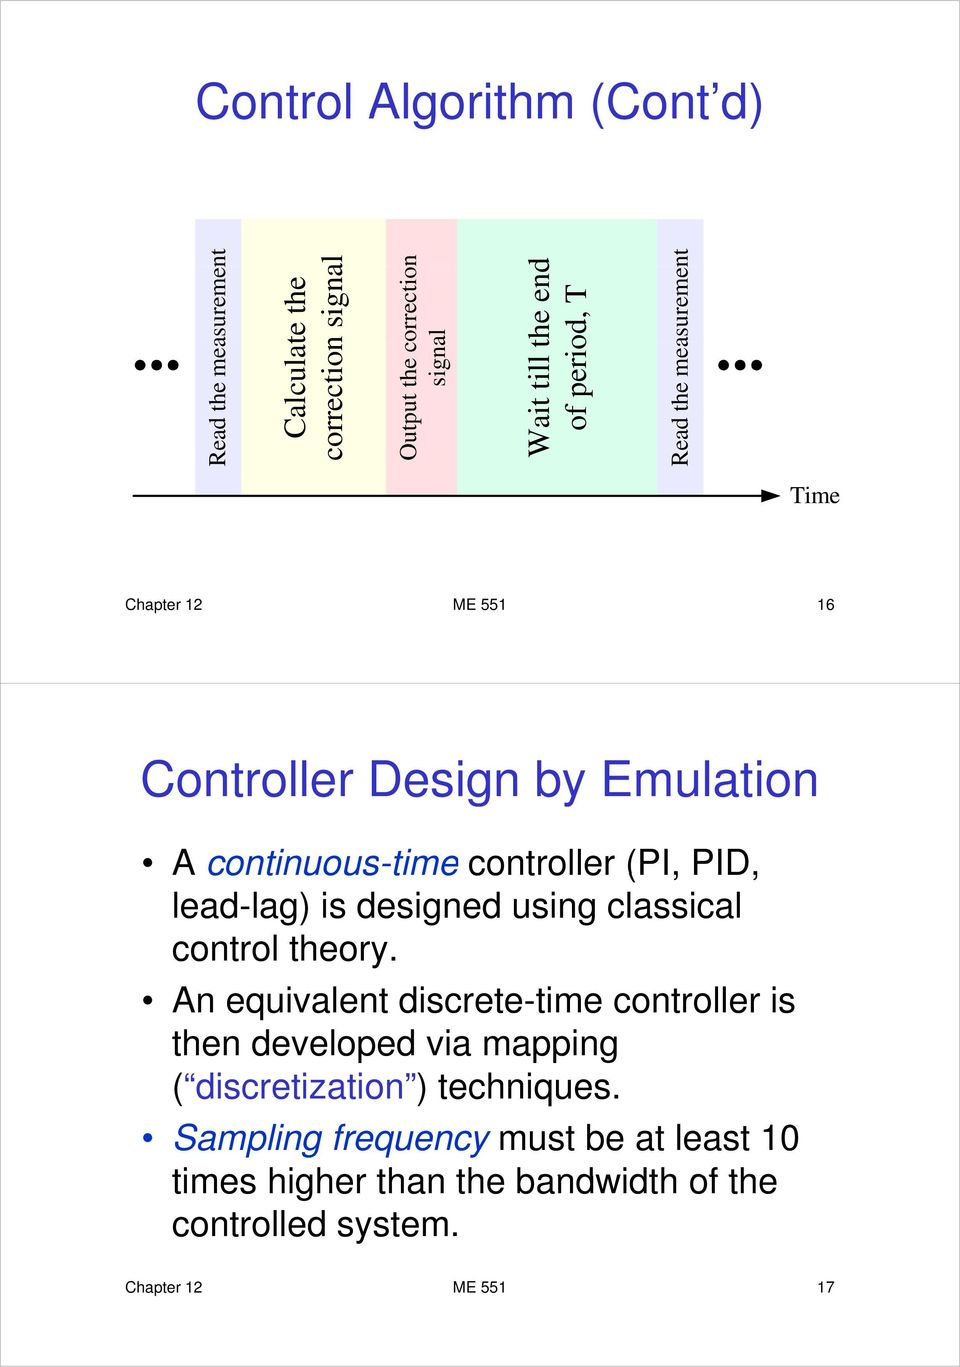 PI, PID, lead-lag is designed using classical control theory.